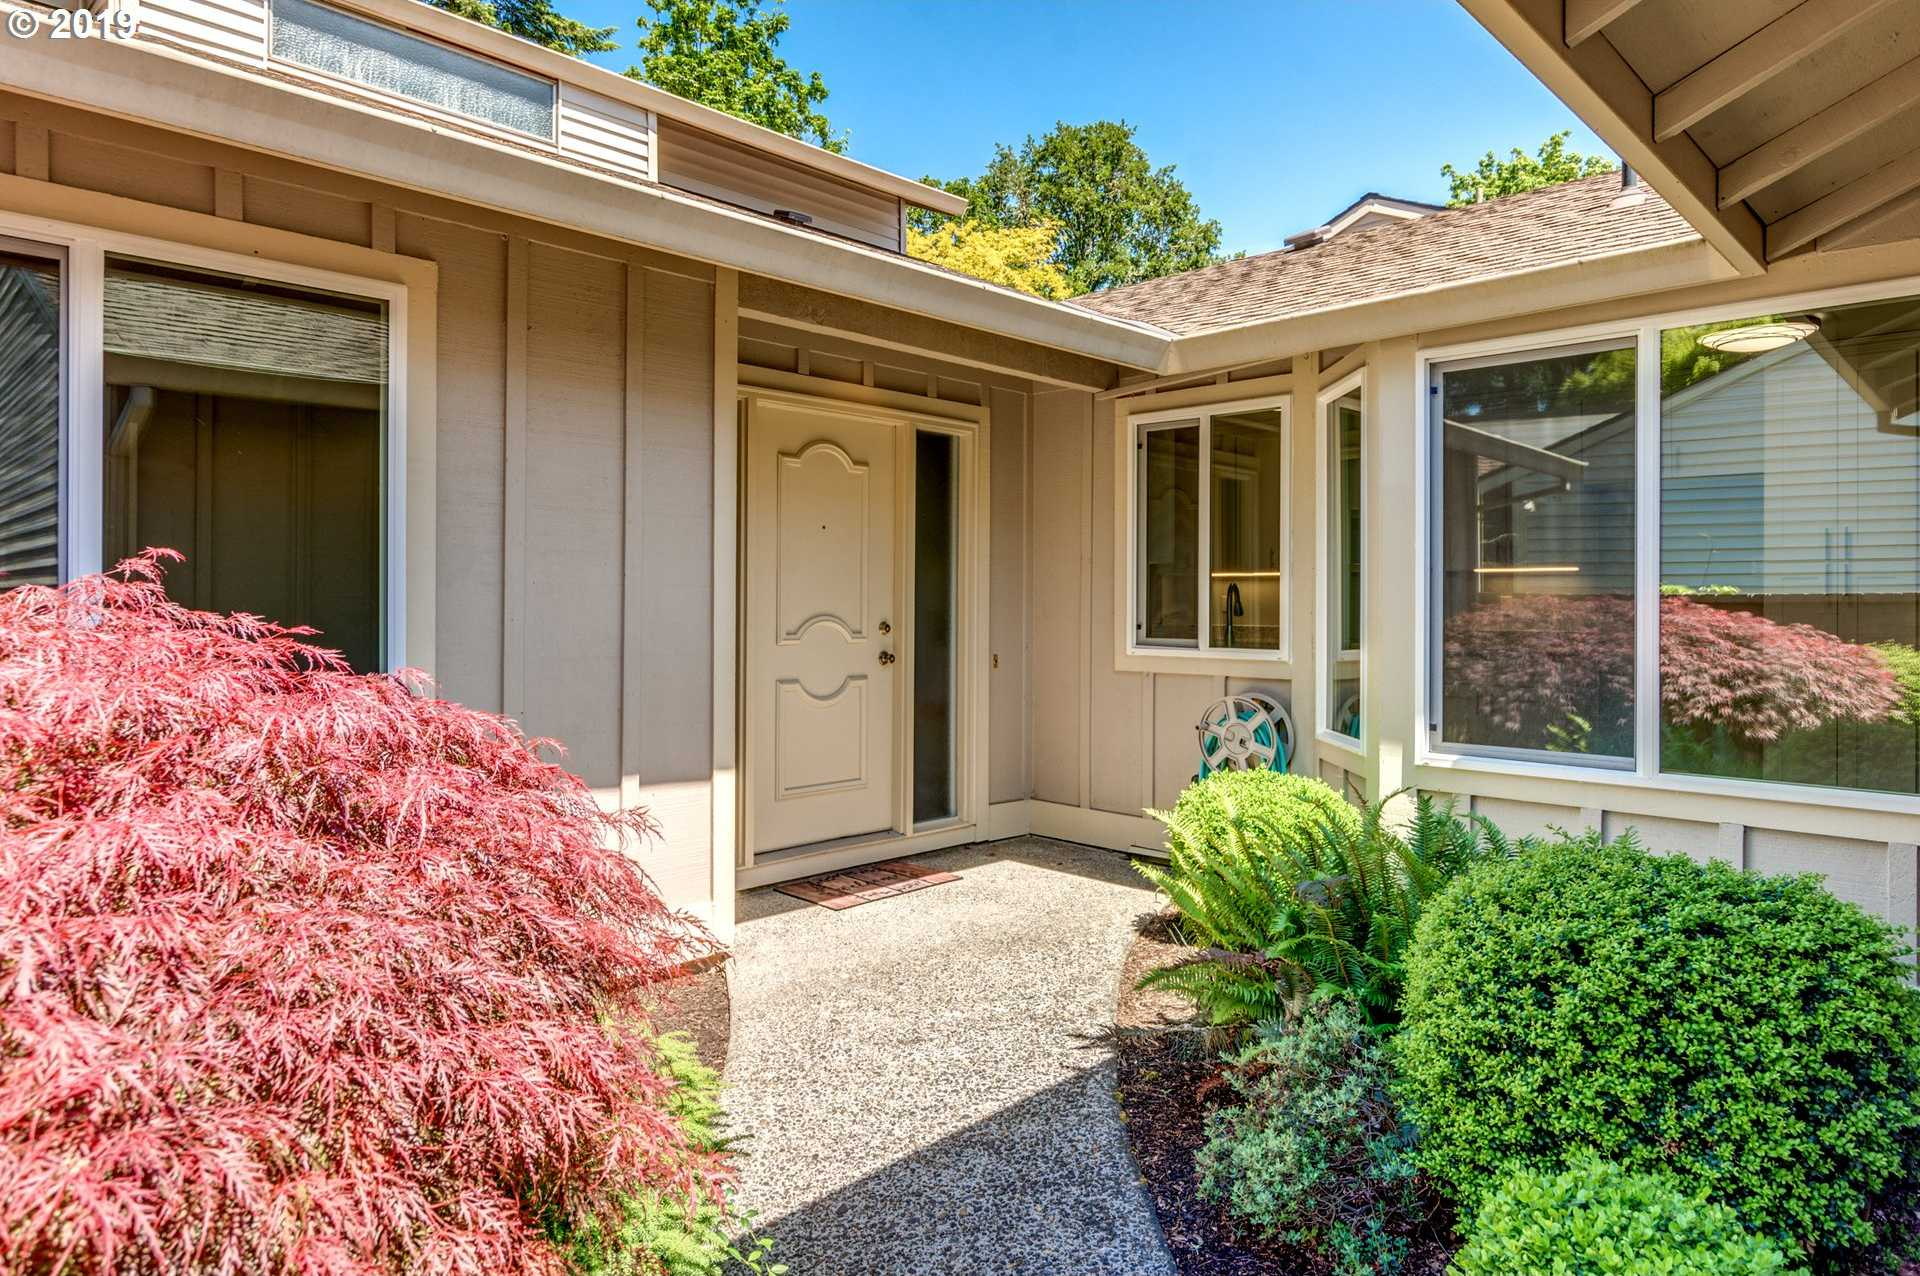 $515,000 - 2Br/2Ba -  for Sale in Summerfield, Tigard